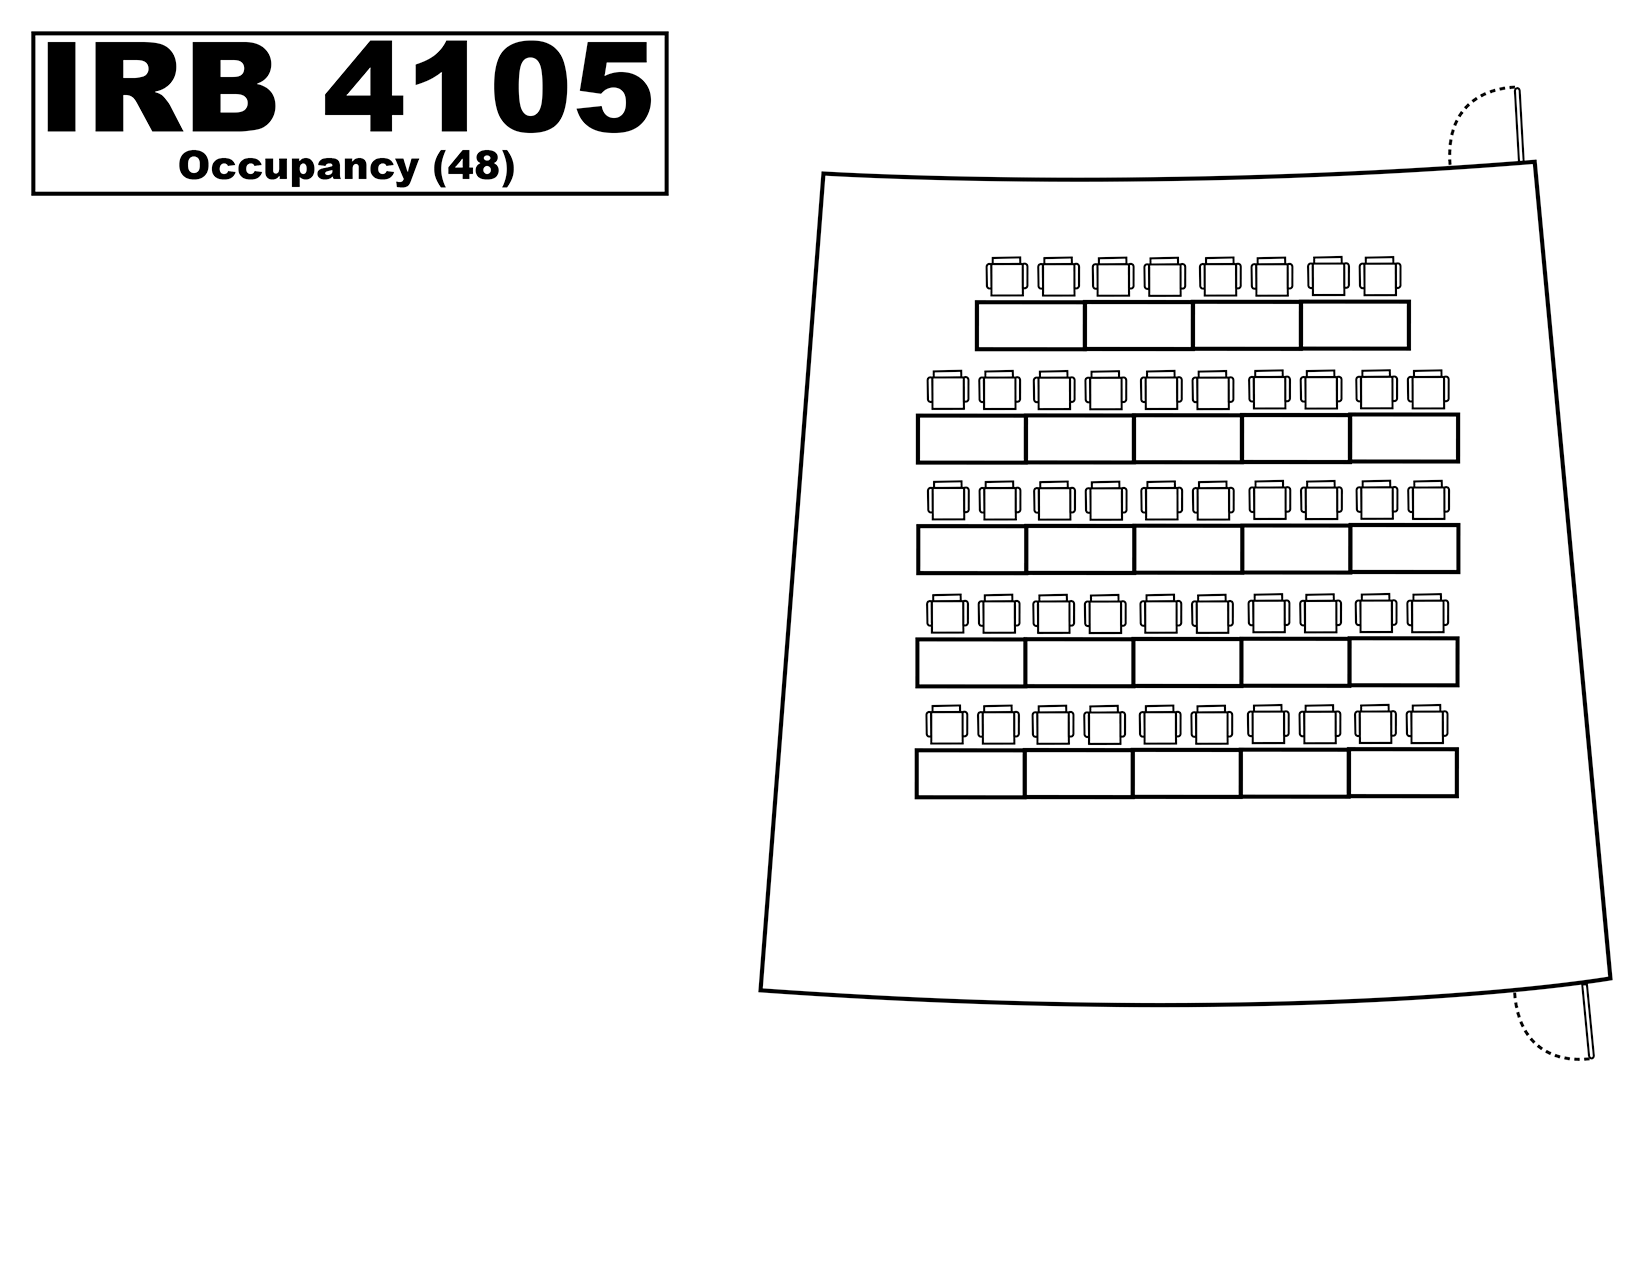 IRB4105 floorplan